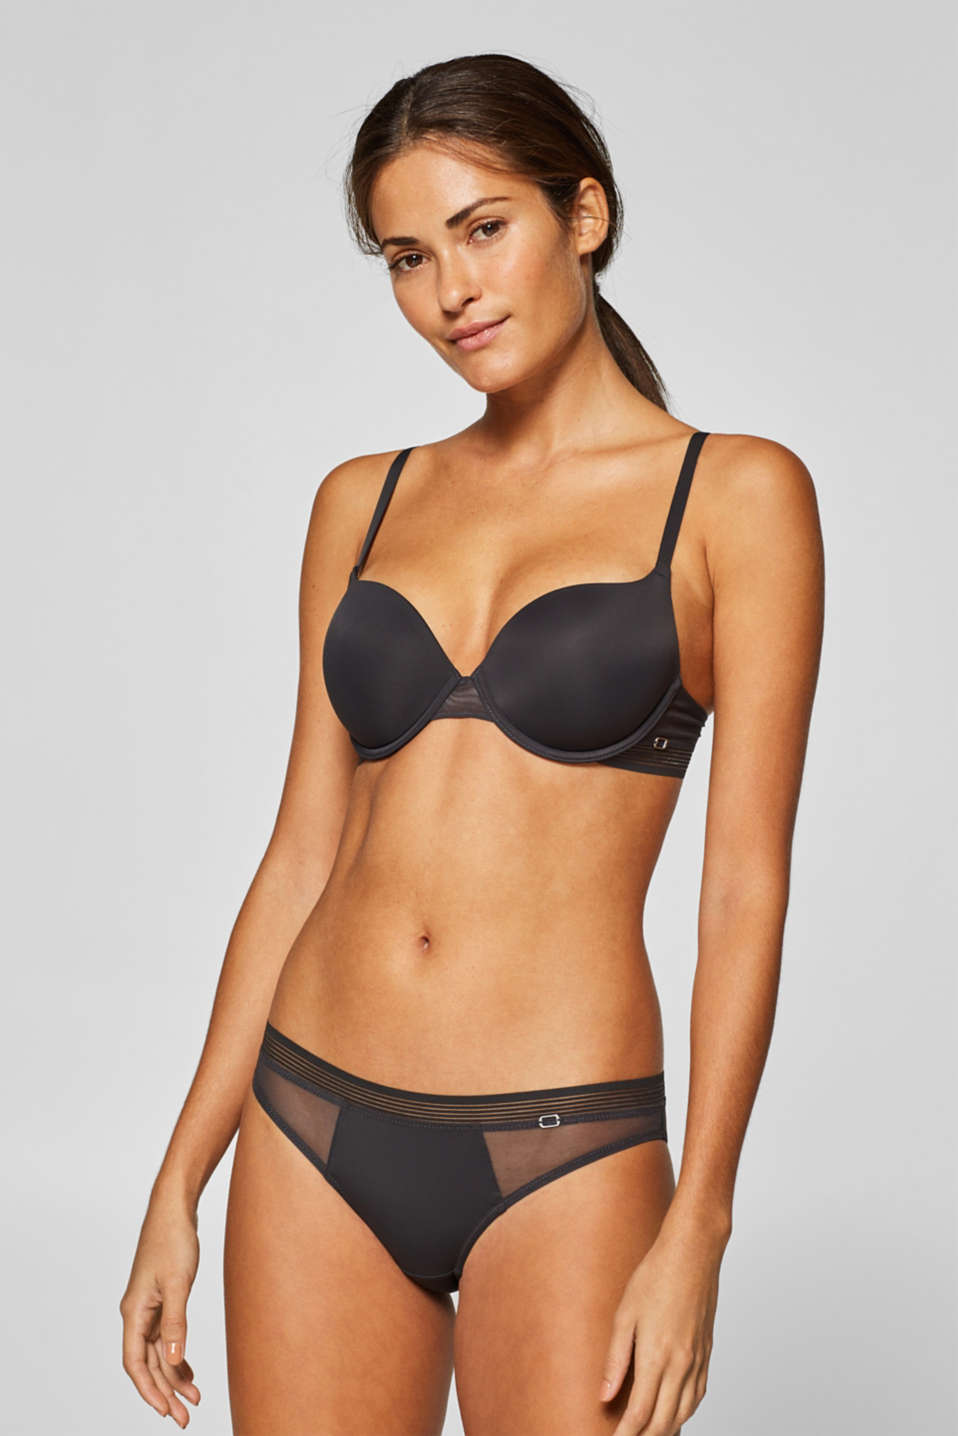 Esprit - NYE padded underwire bra made of microfibre and mesh